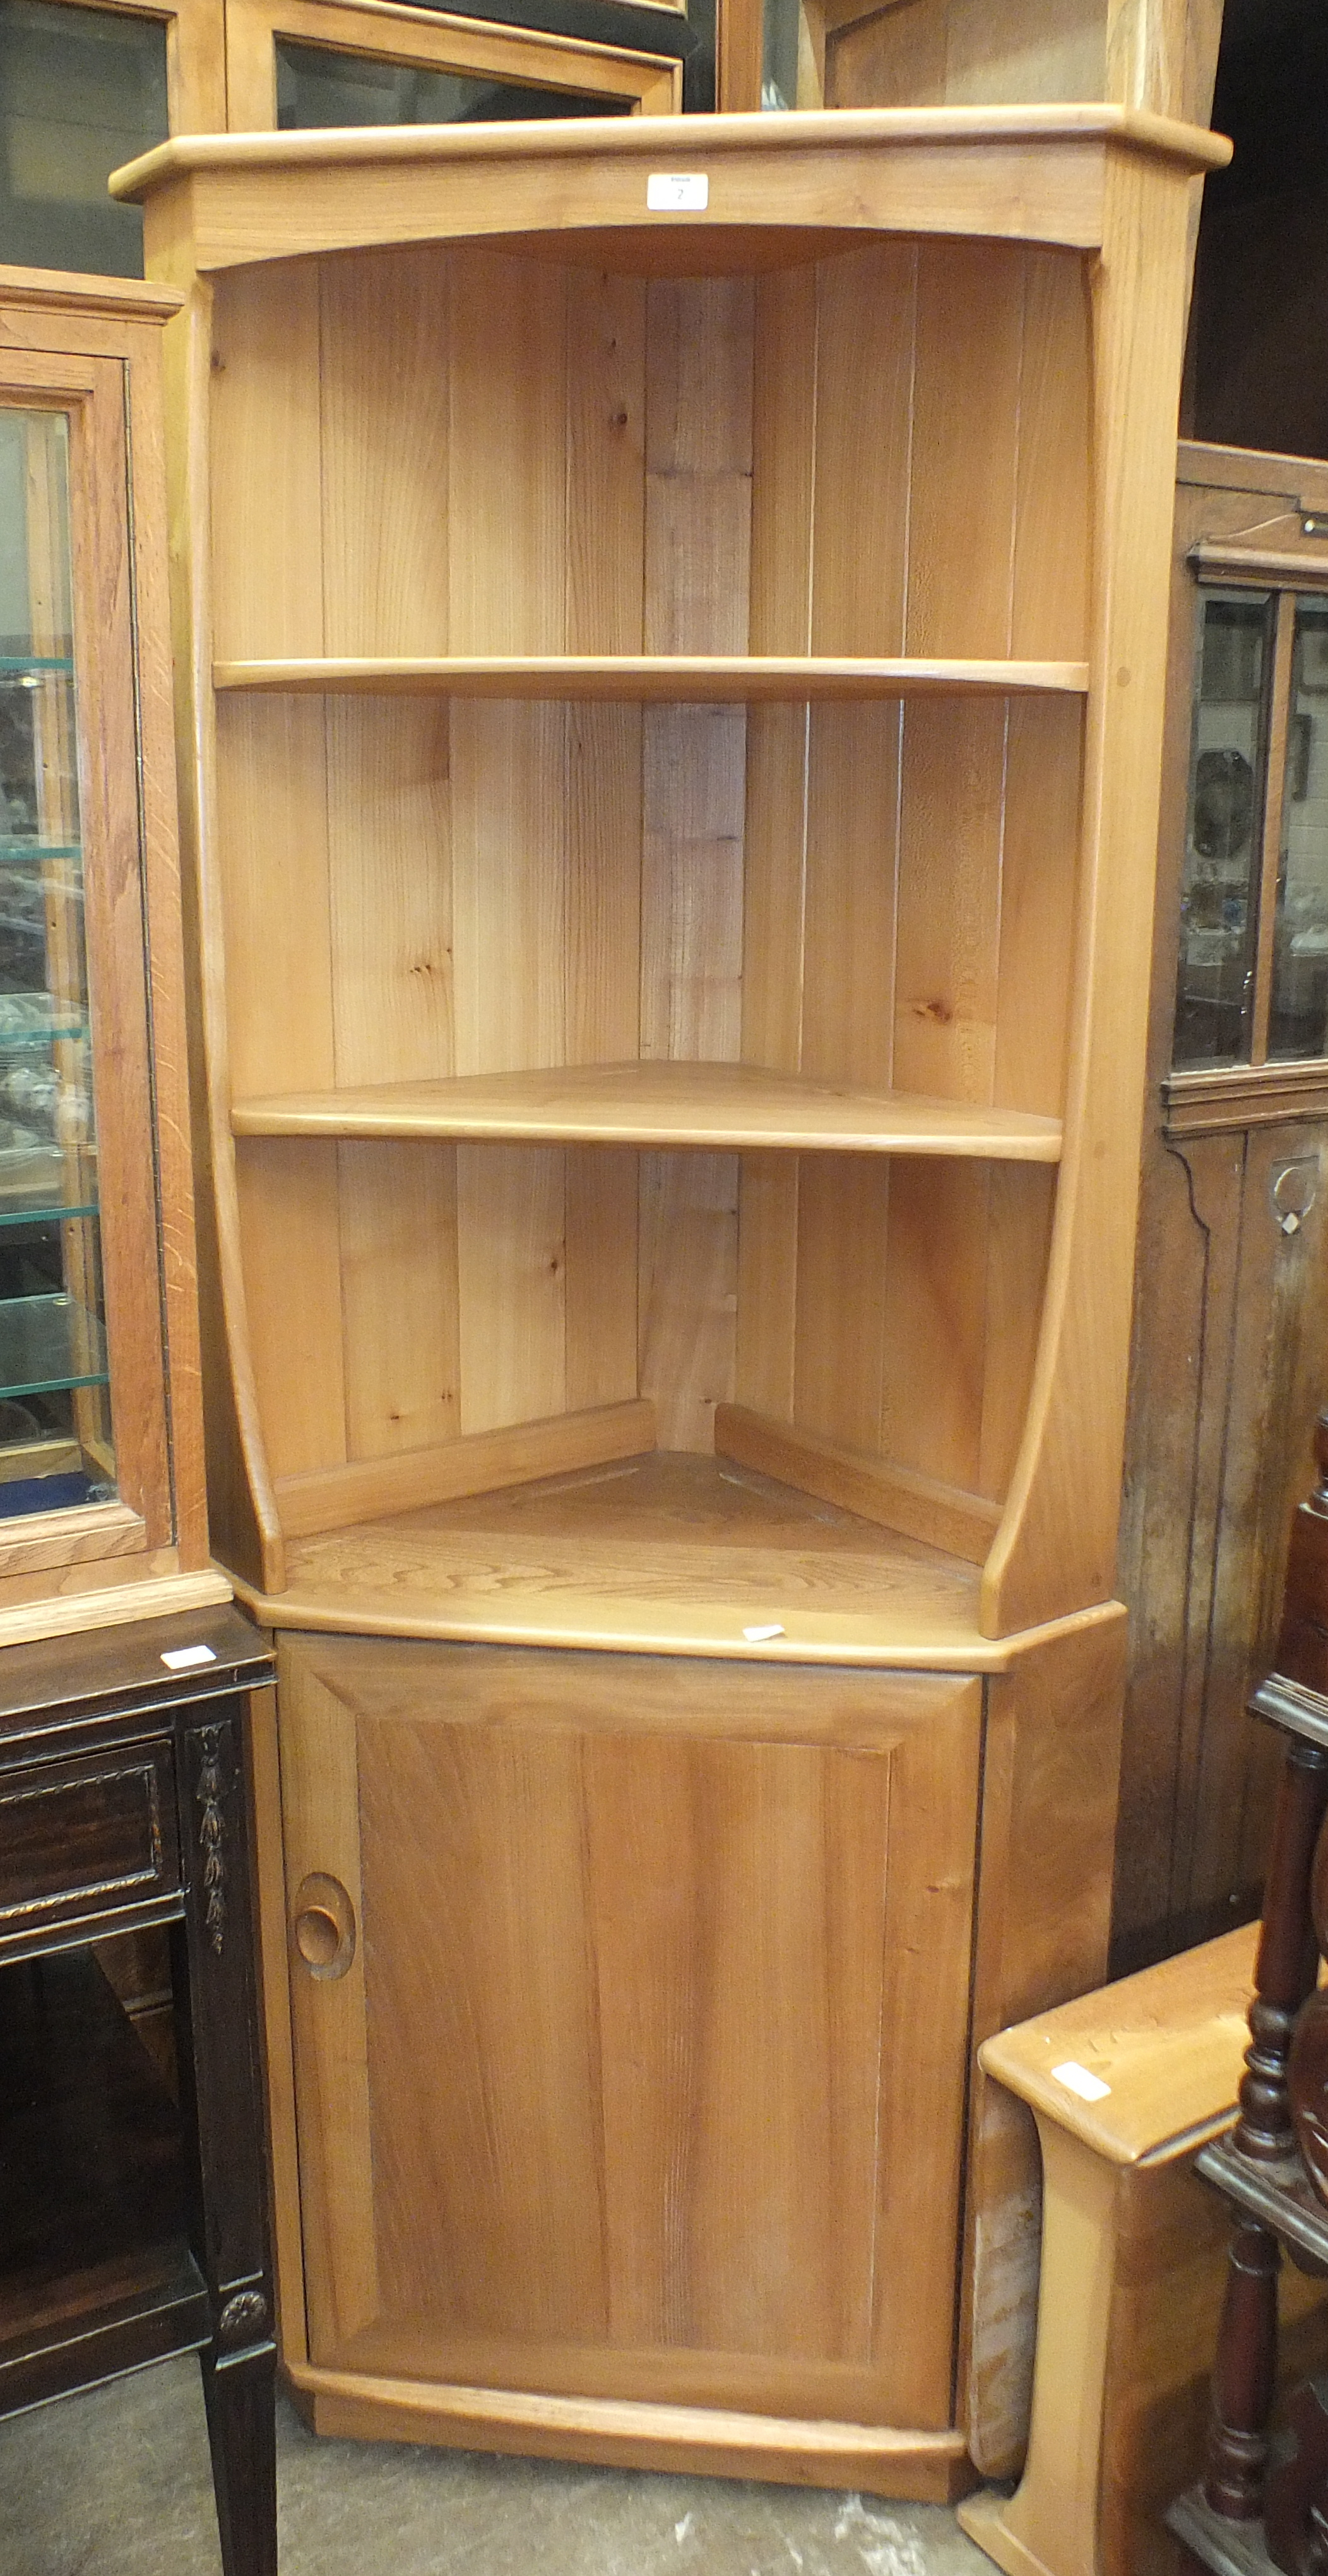 Lot 2 - An Ercol light wood corner shelf unit/cabinet, 76cm wide, 179cm high and a small Ercol-style drop-